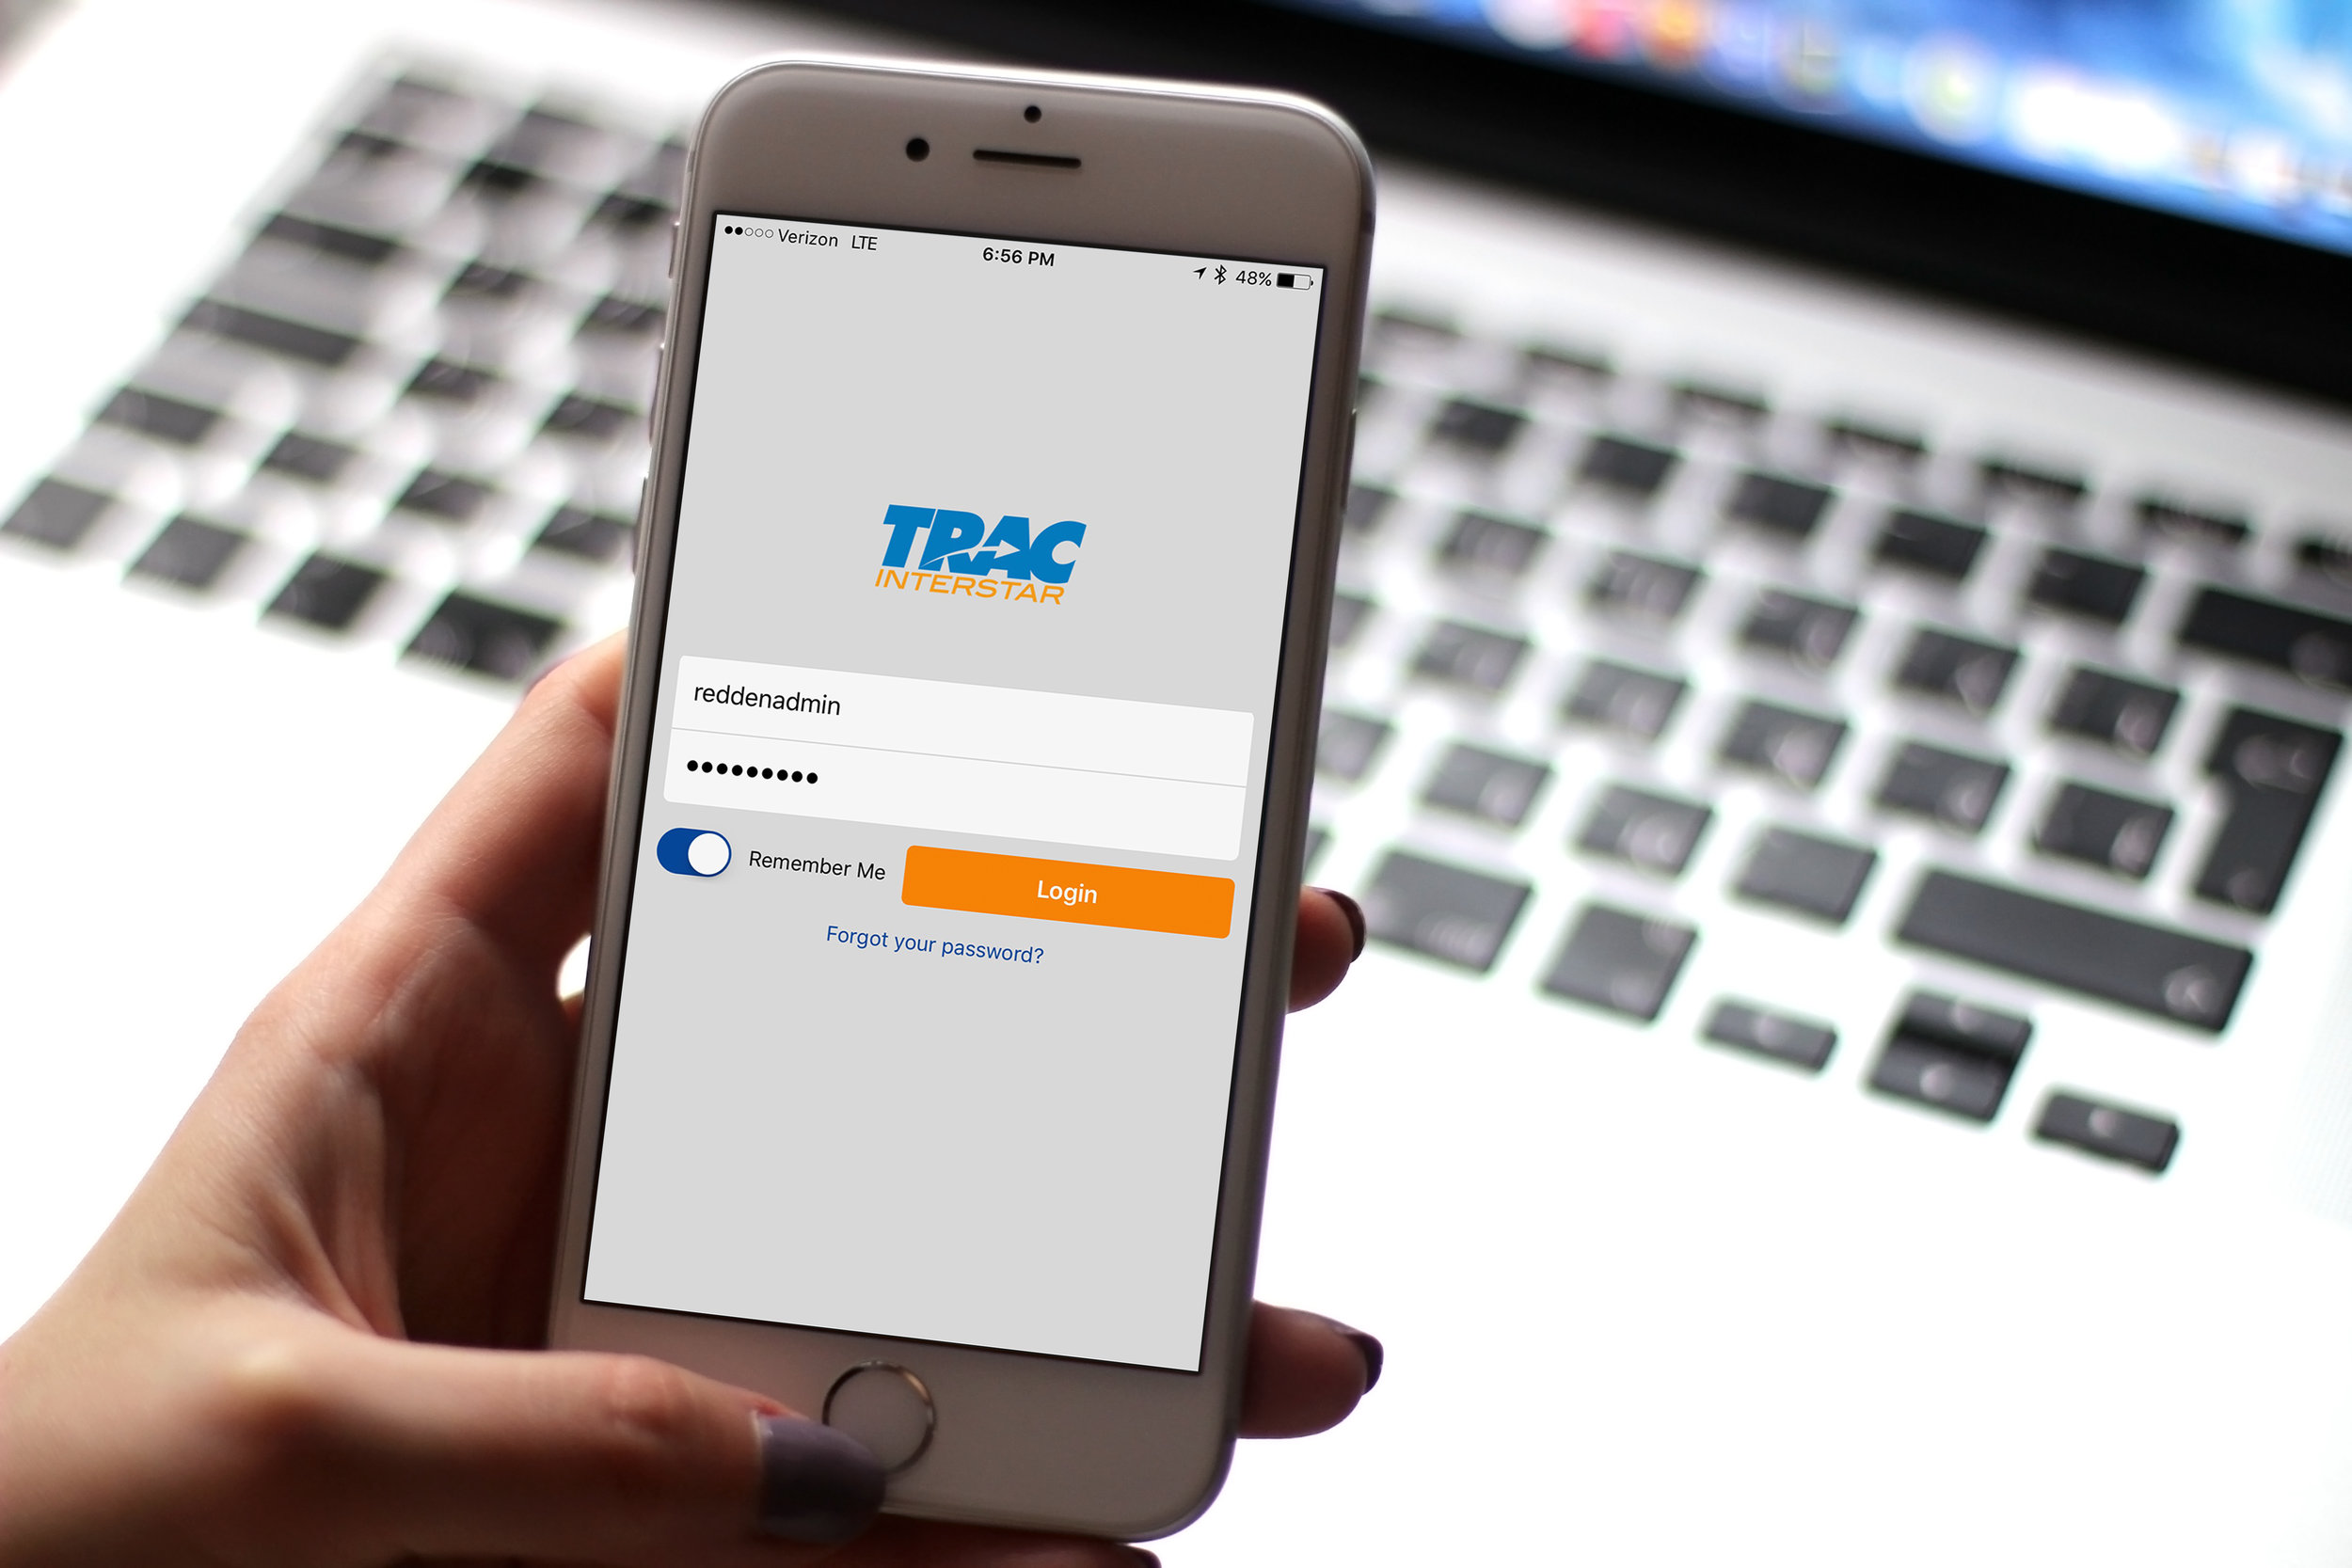 Each driver & vendor gets their own individual accounts, for easy navigation